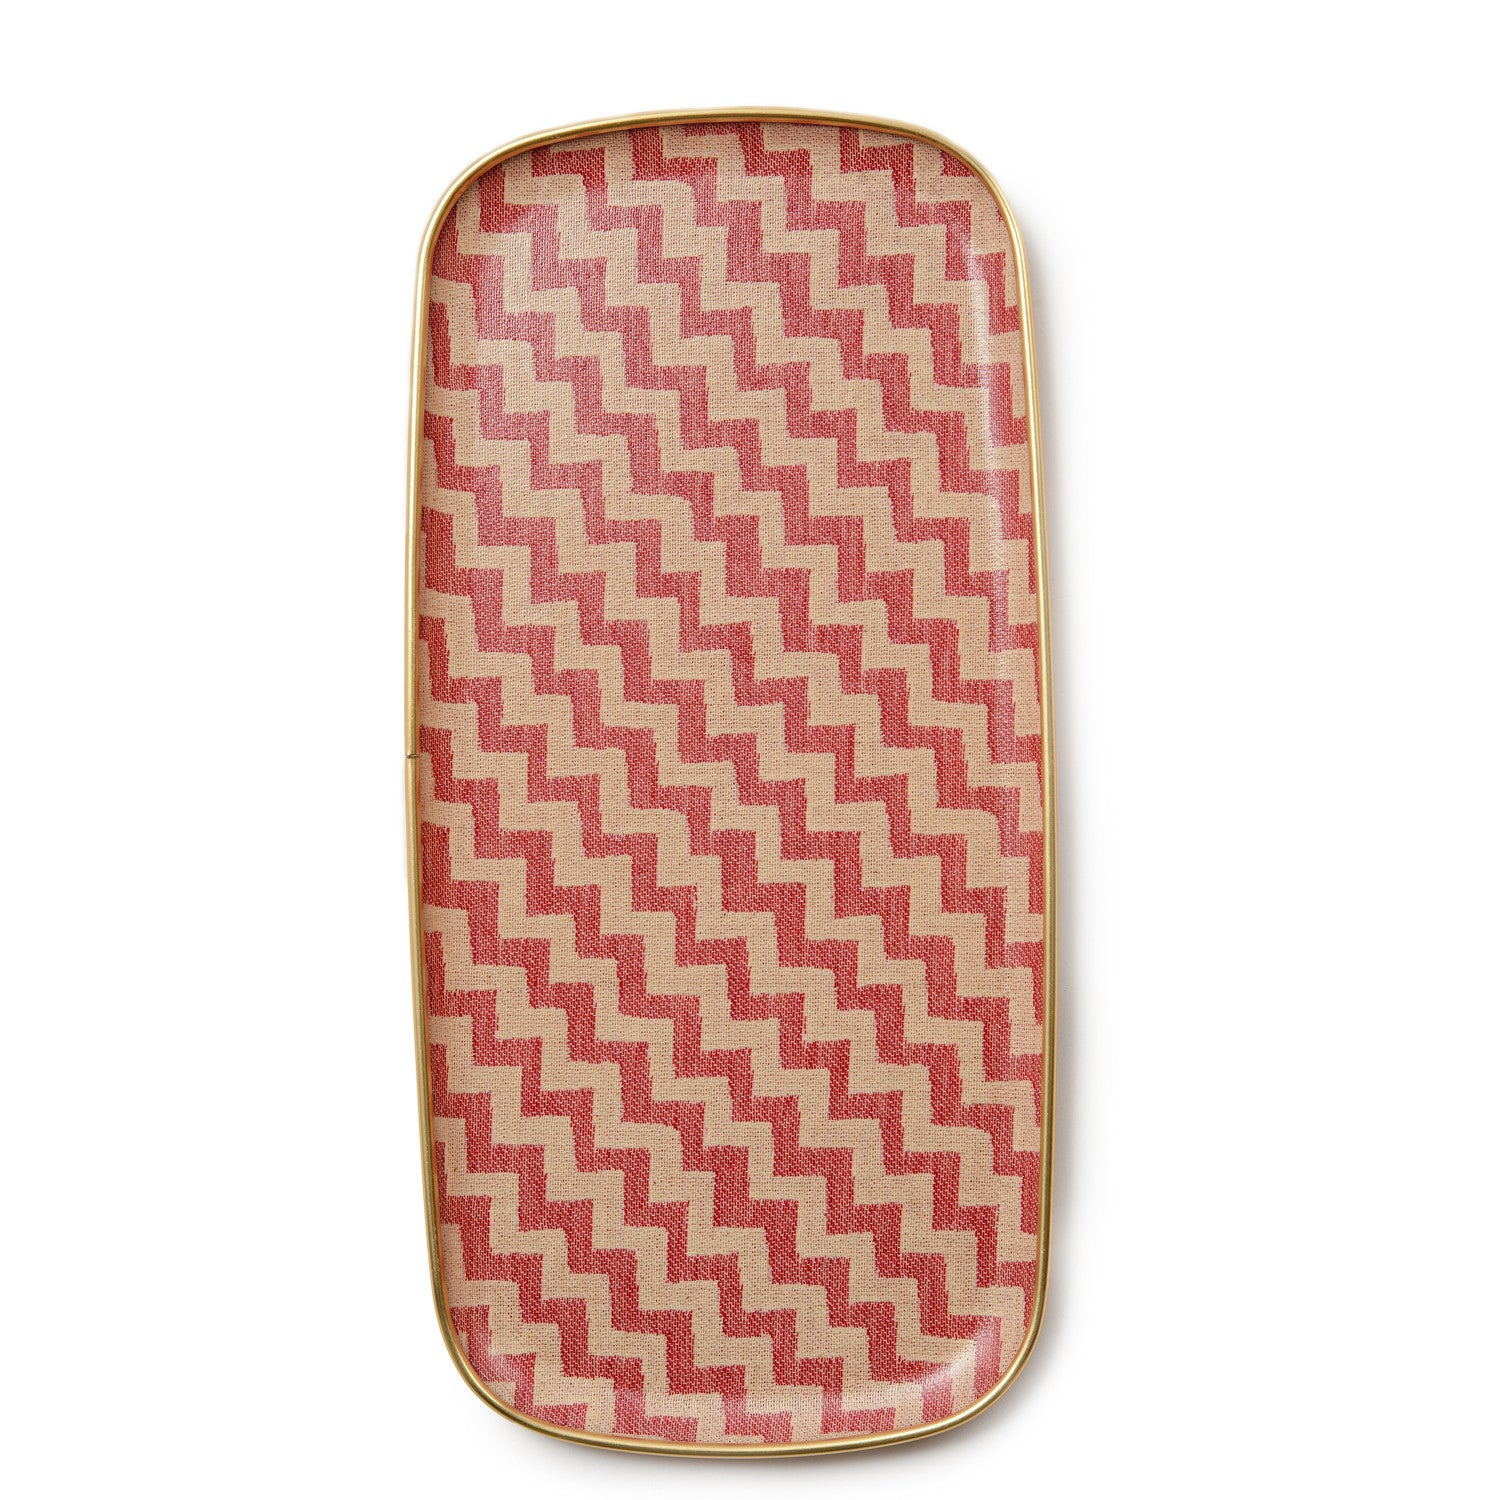 Climbing Chevy Rectangle Tray - Radish and cream